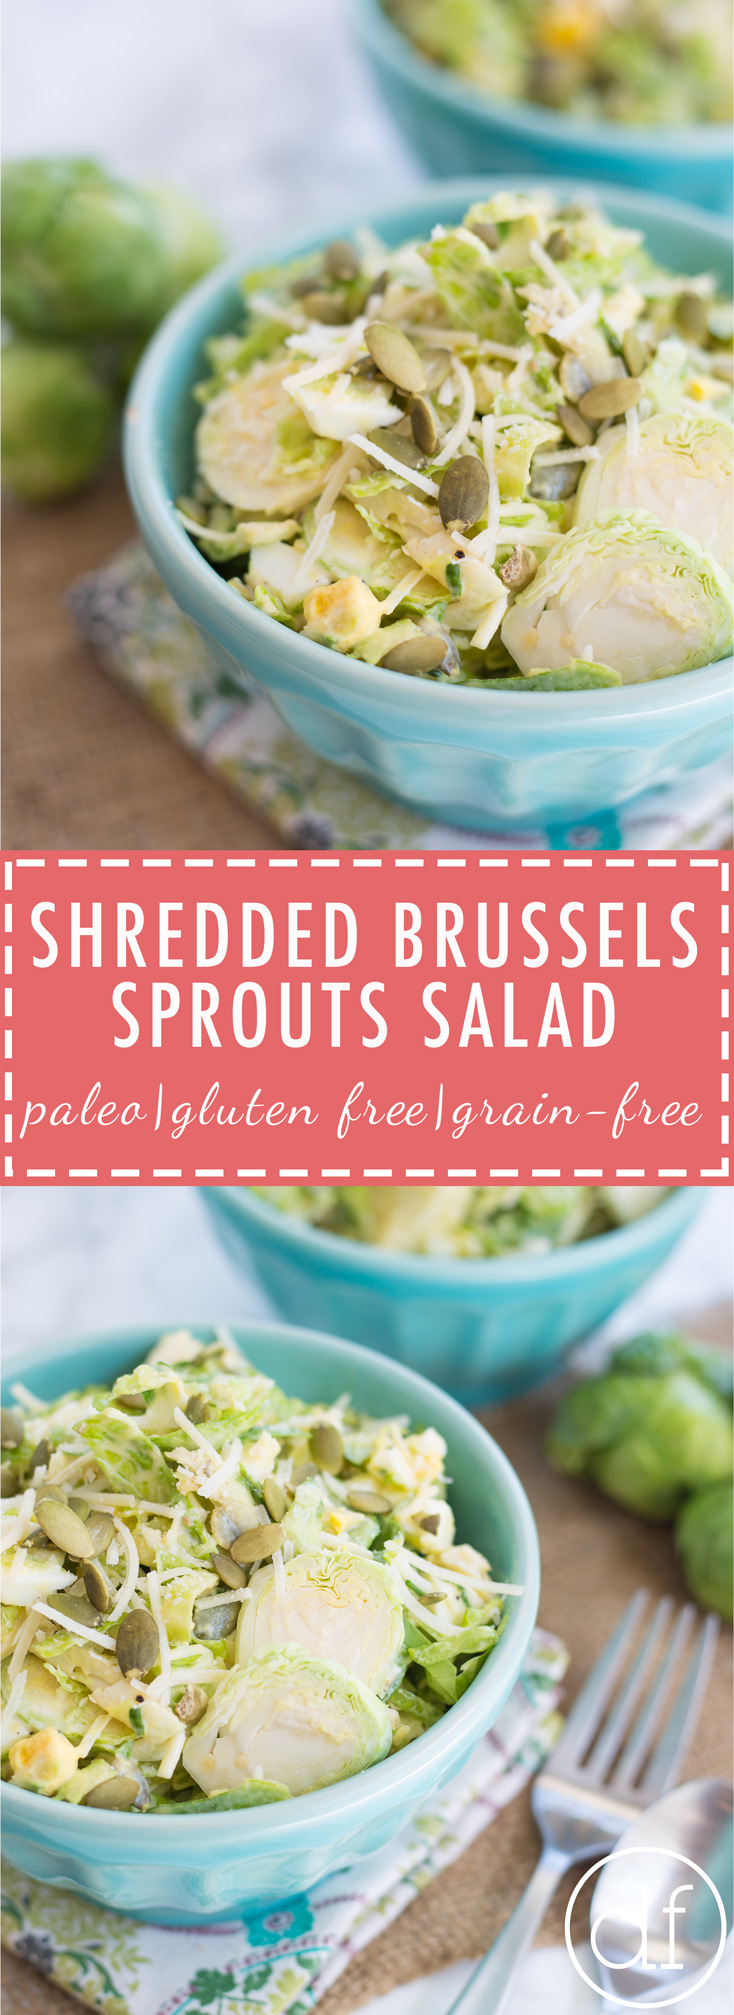 Brussels Sprouts, Grain Free, Gluten Free, Whole 30, Paleo, Primal, Summertime Salad, Dairy Free